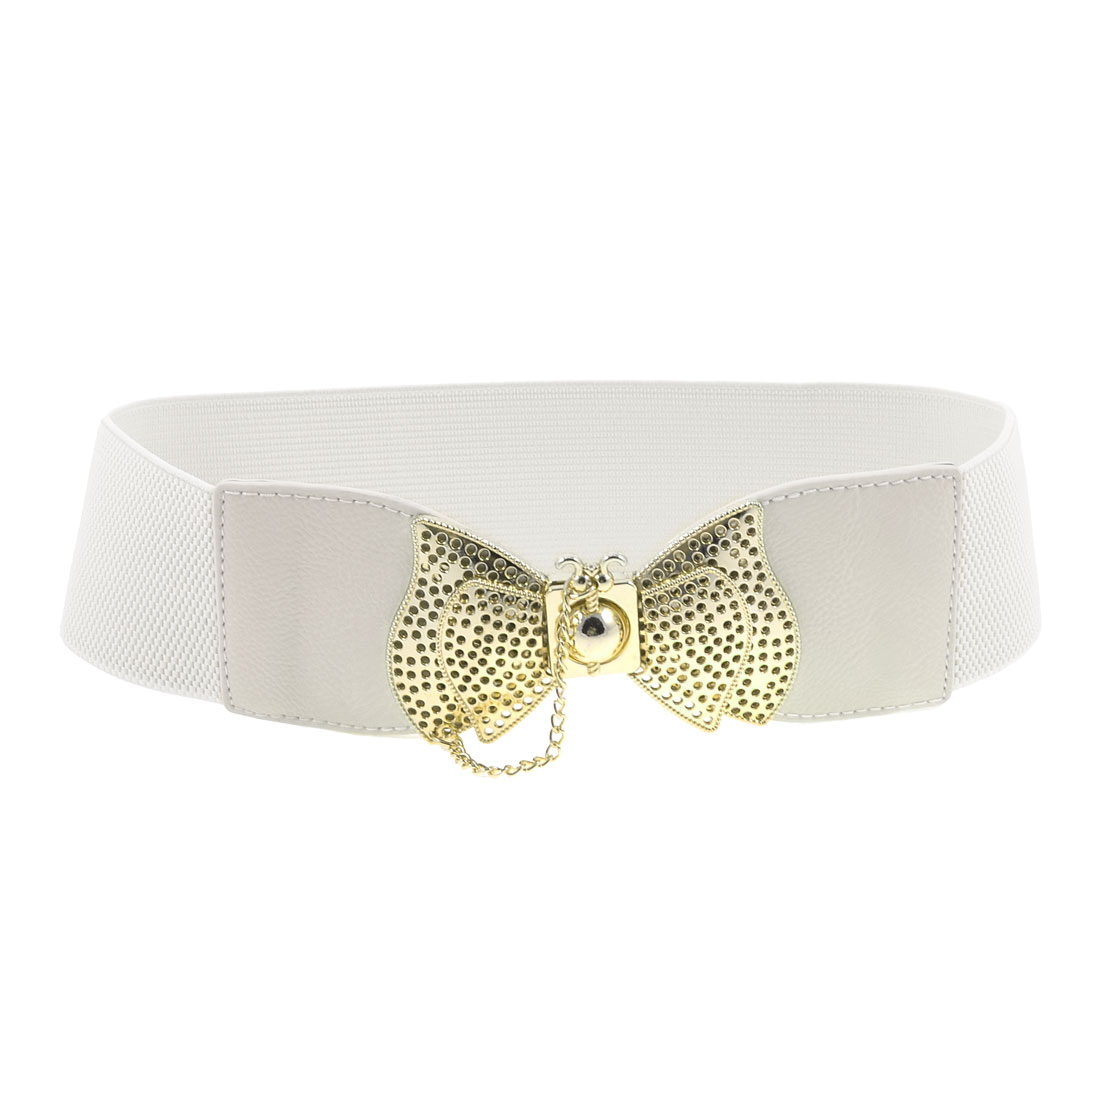 White Gold Tone Cut Out Bow Tie Buckle Elastic Waist Belt 6CM Wide for Lady